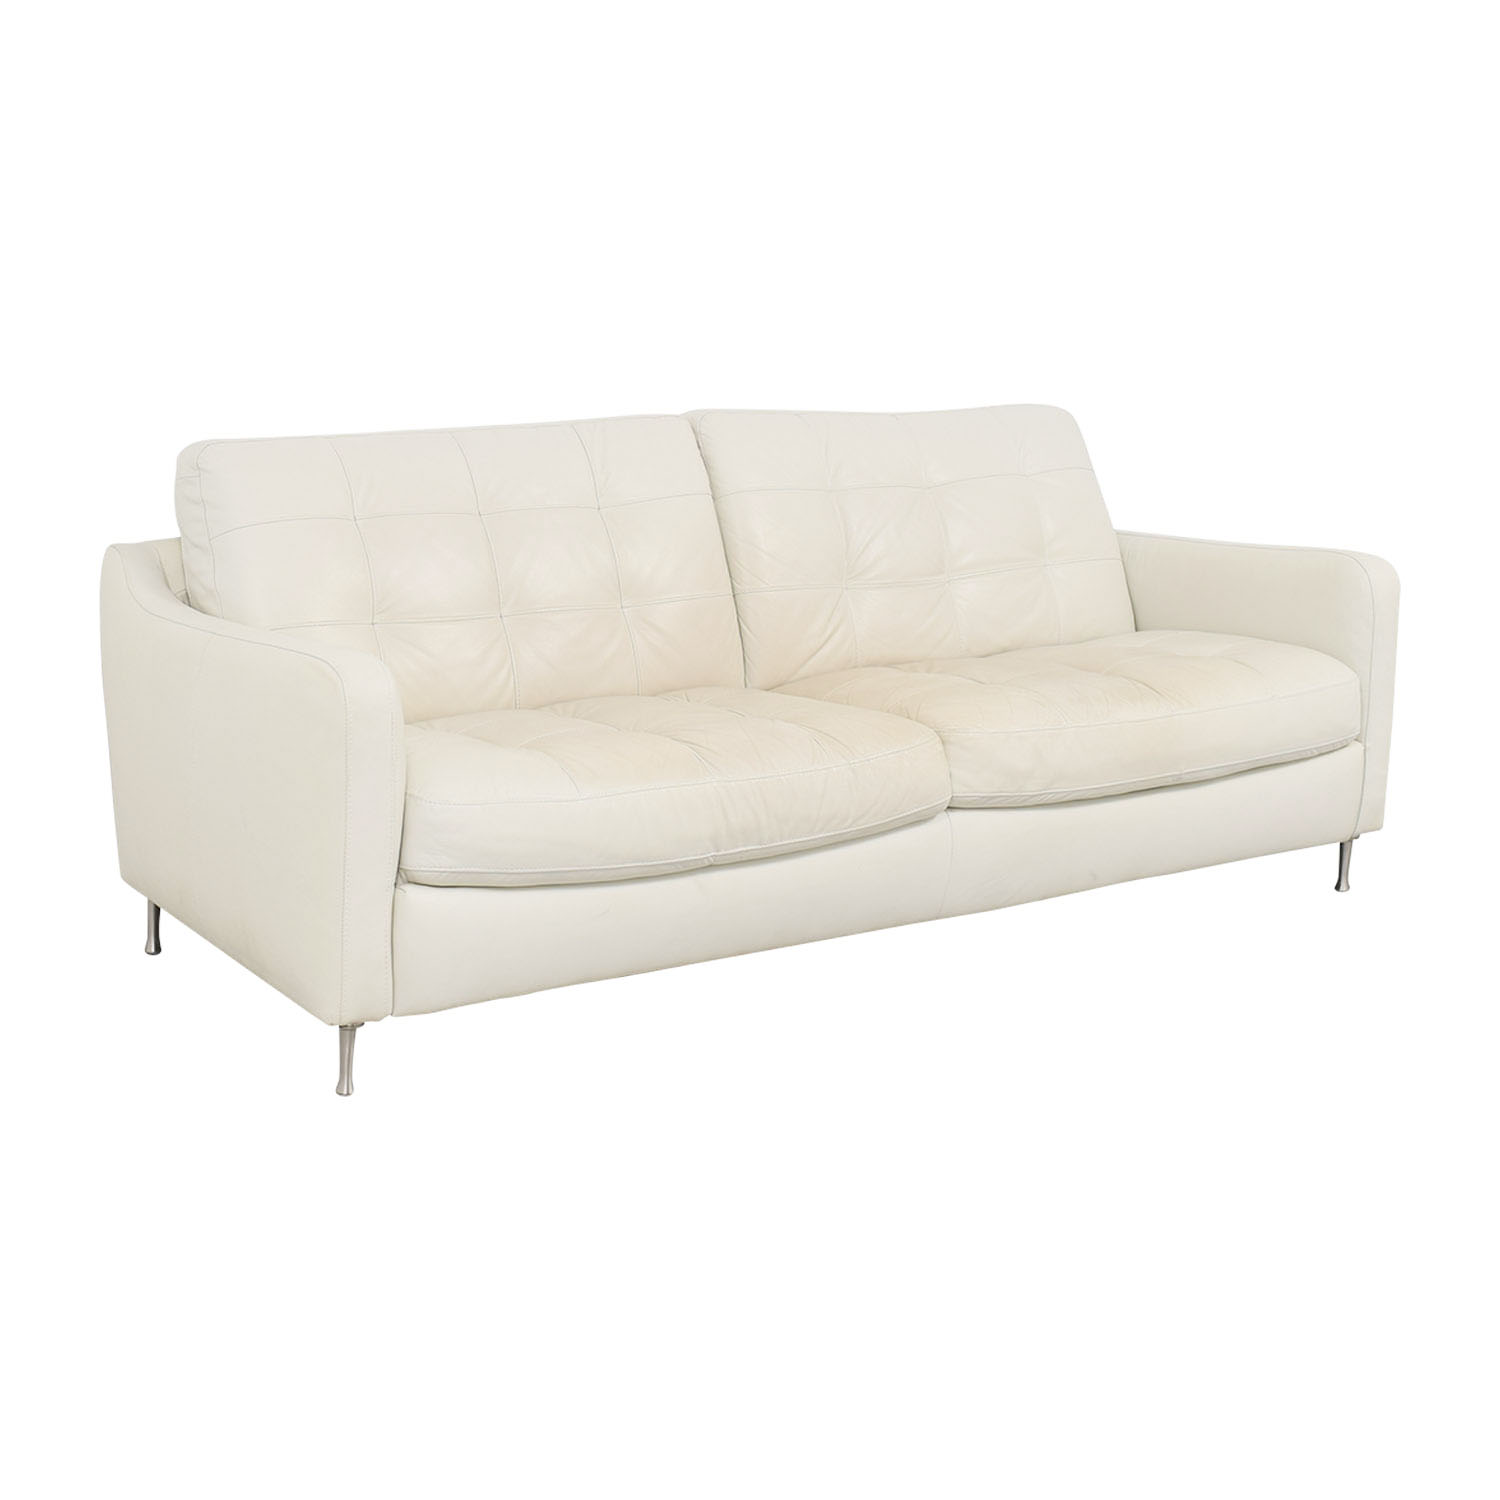 Ordinaire ... Buy Natuzzi Natuzzi White Tufted Leather Sofa Online ...